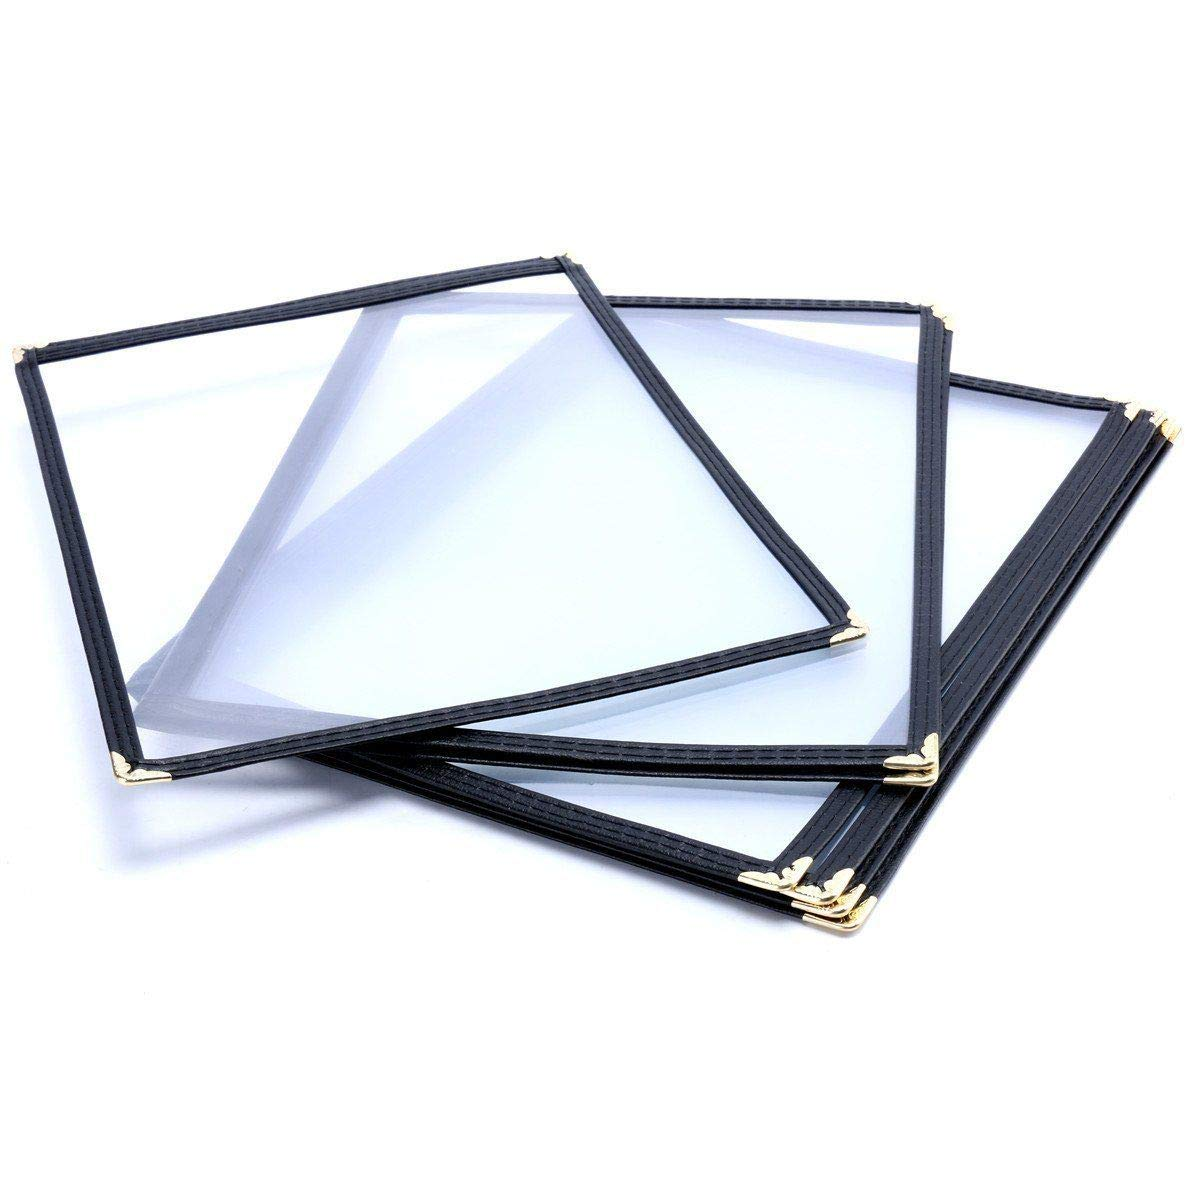 """(10 Pack) Yaekoo Triple Fold Menu Cover for 8.5""""x11"""", Book Style Restaurant Recipe Menu Covers (3 Page 6 View)"""